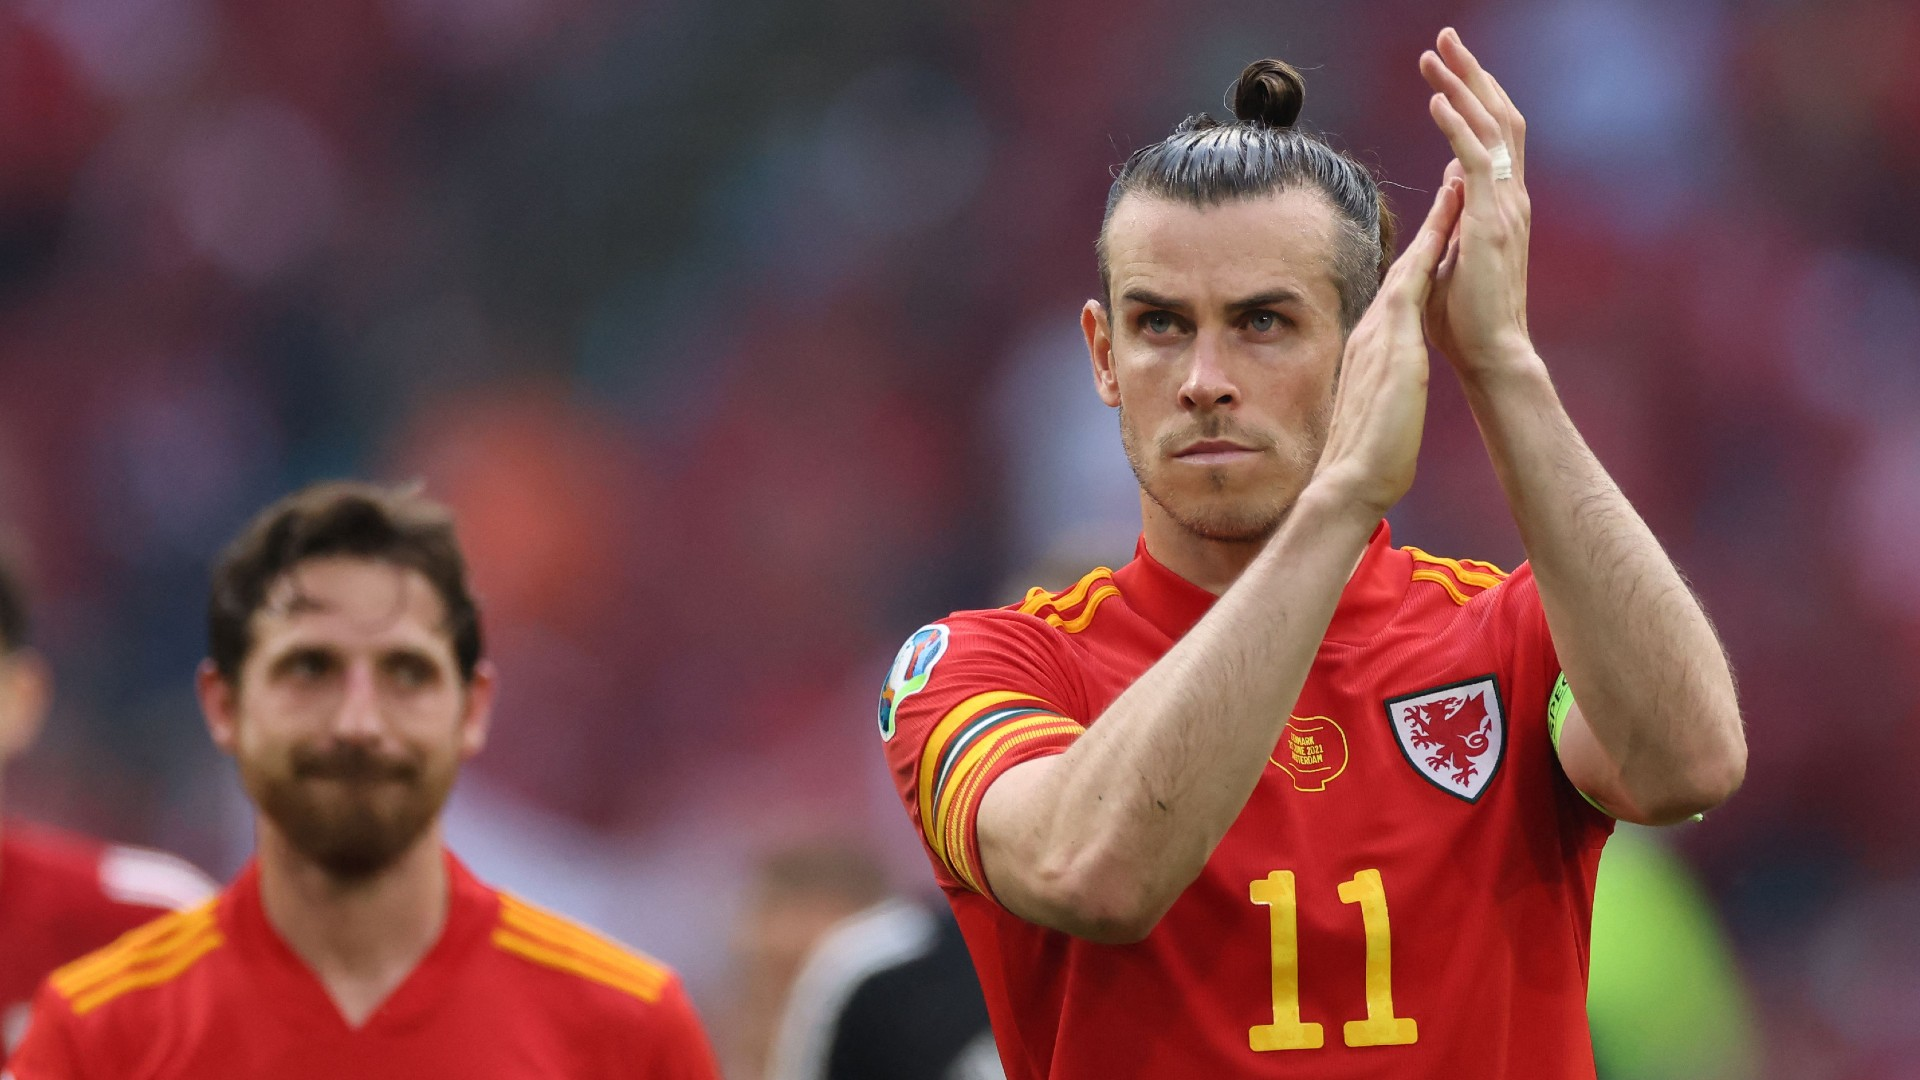 Bale backed to feature in 'many more' Wales squads as Mepham reacts to retirement talk